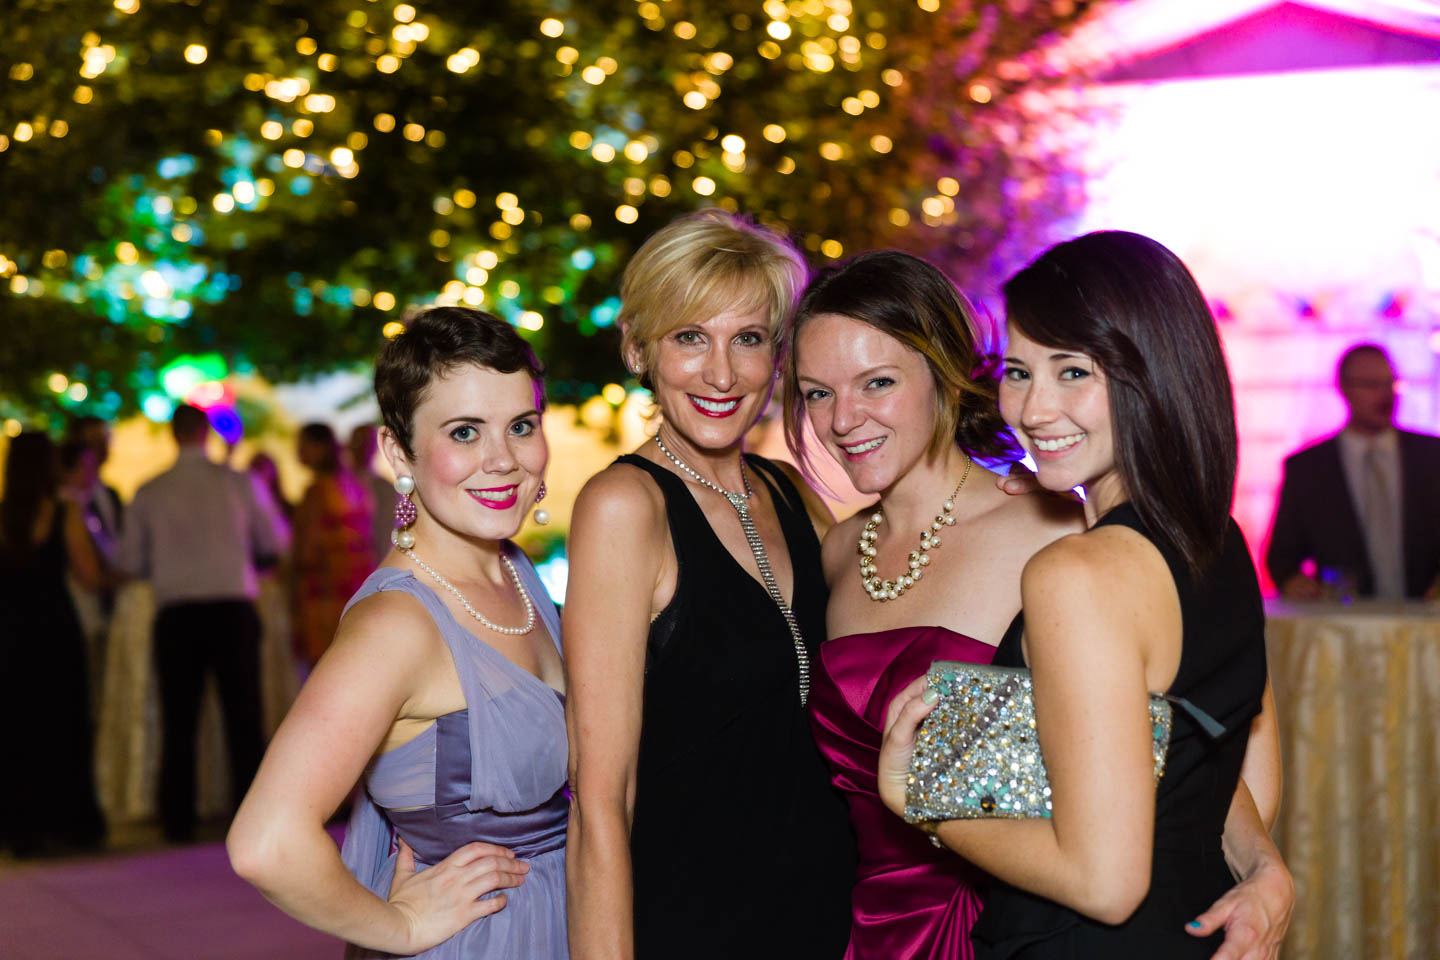 Fabulous gals at the after party